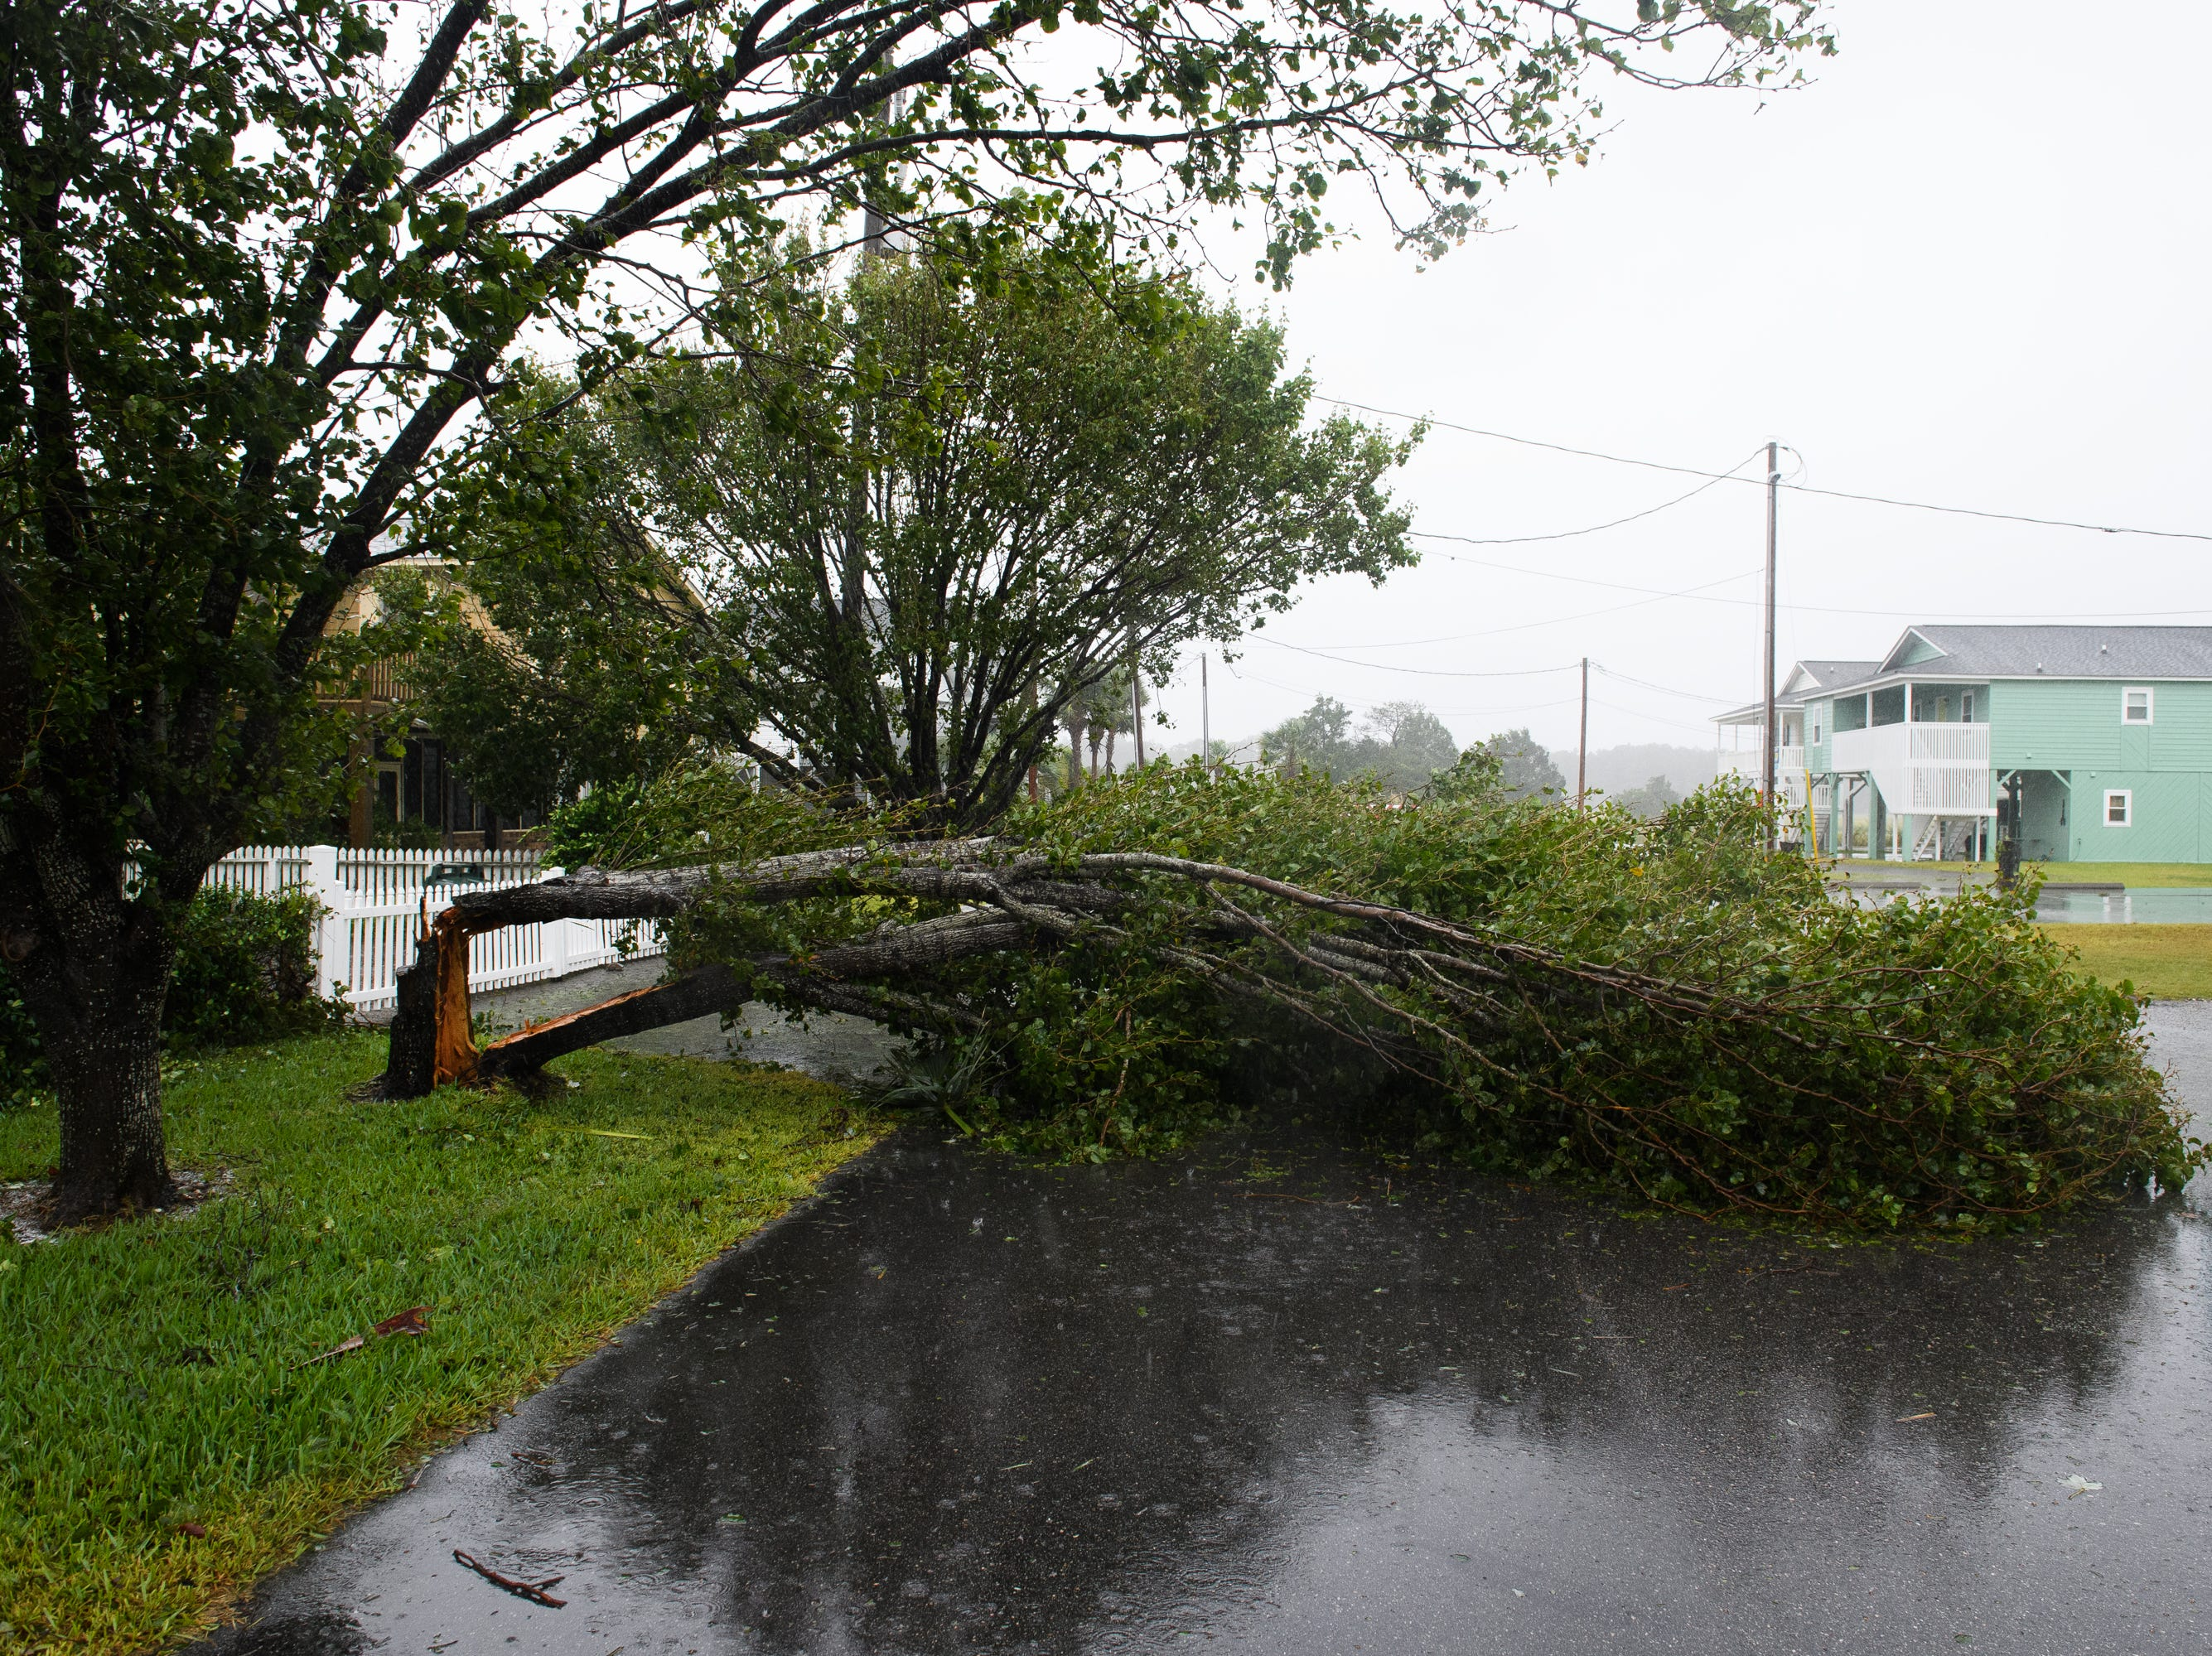 A down tree blocks a residential street in the Cherry Grove neighborhood of North Myrtle Beach on Saturday, Sept. 15, 2018.